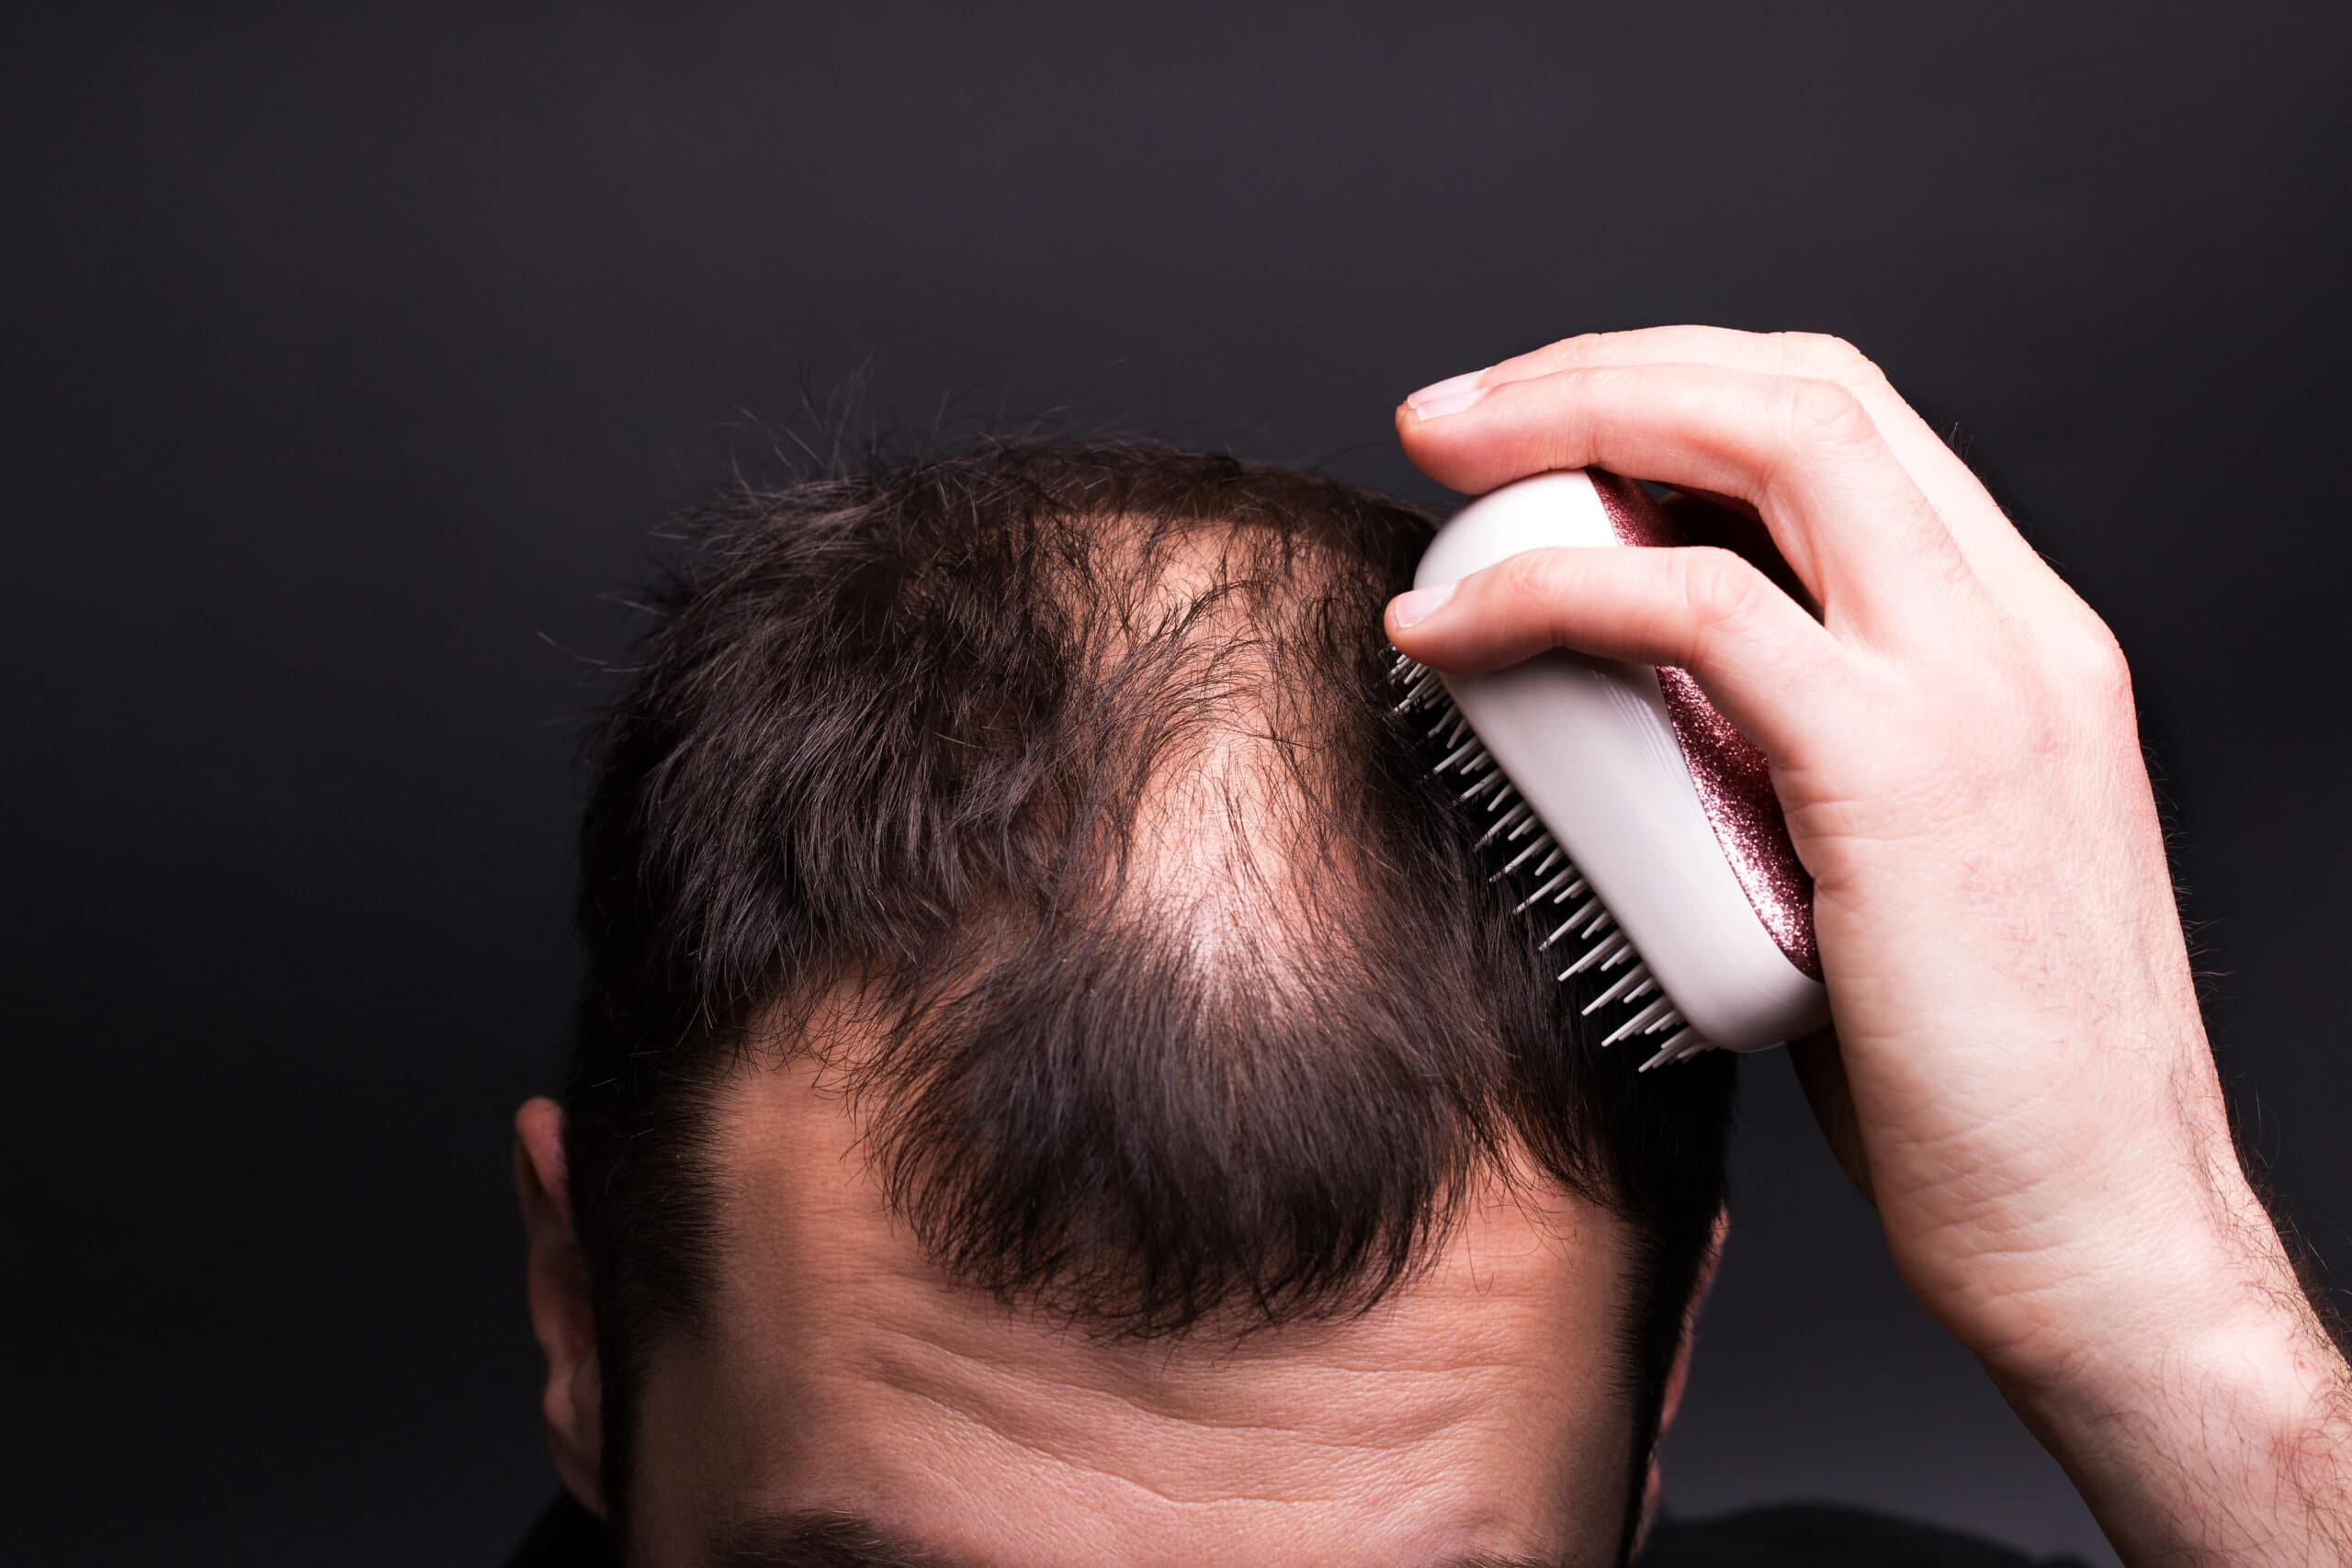 A man is combing his hair. Head with baldness. The problem of hair growth on the head.